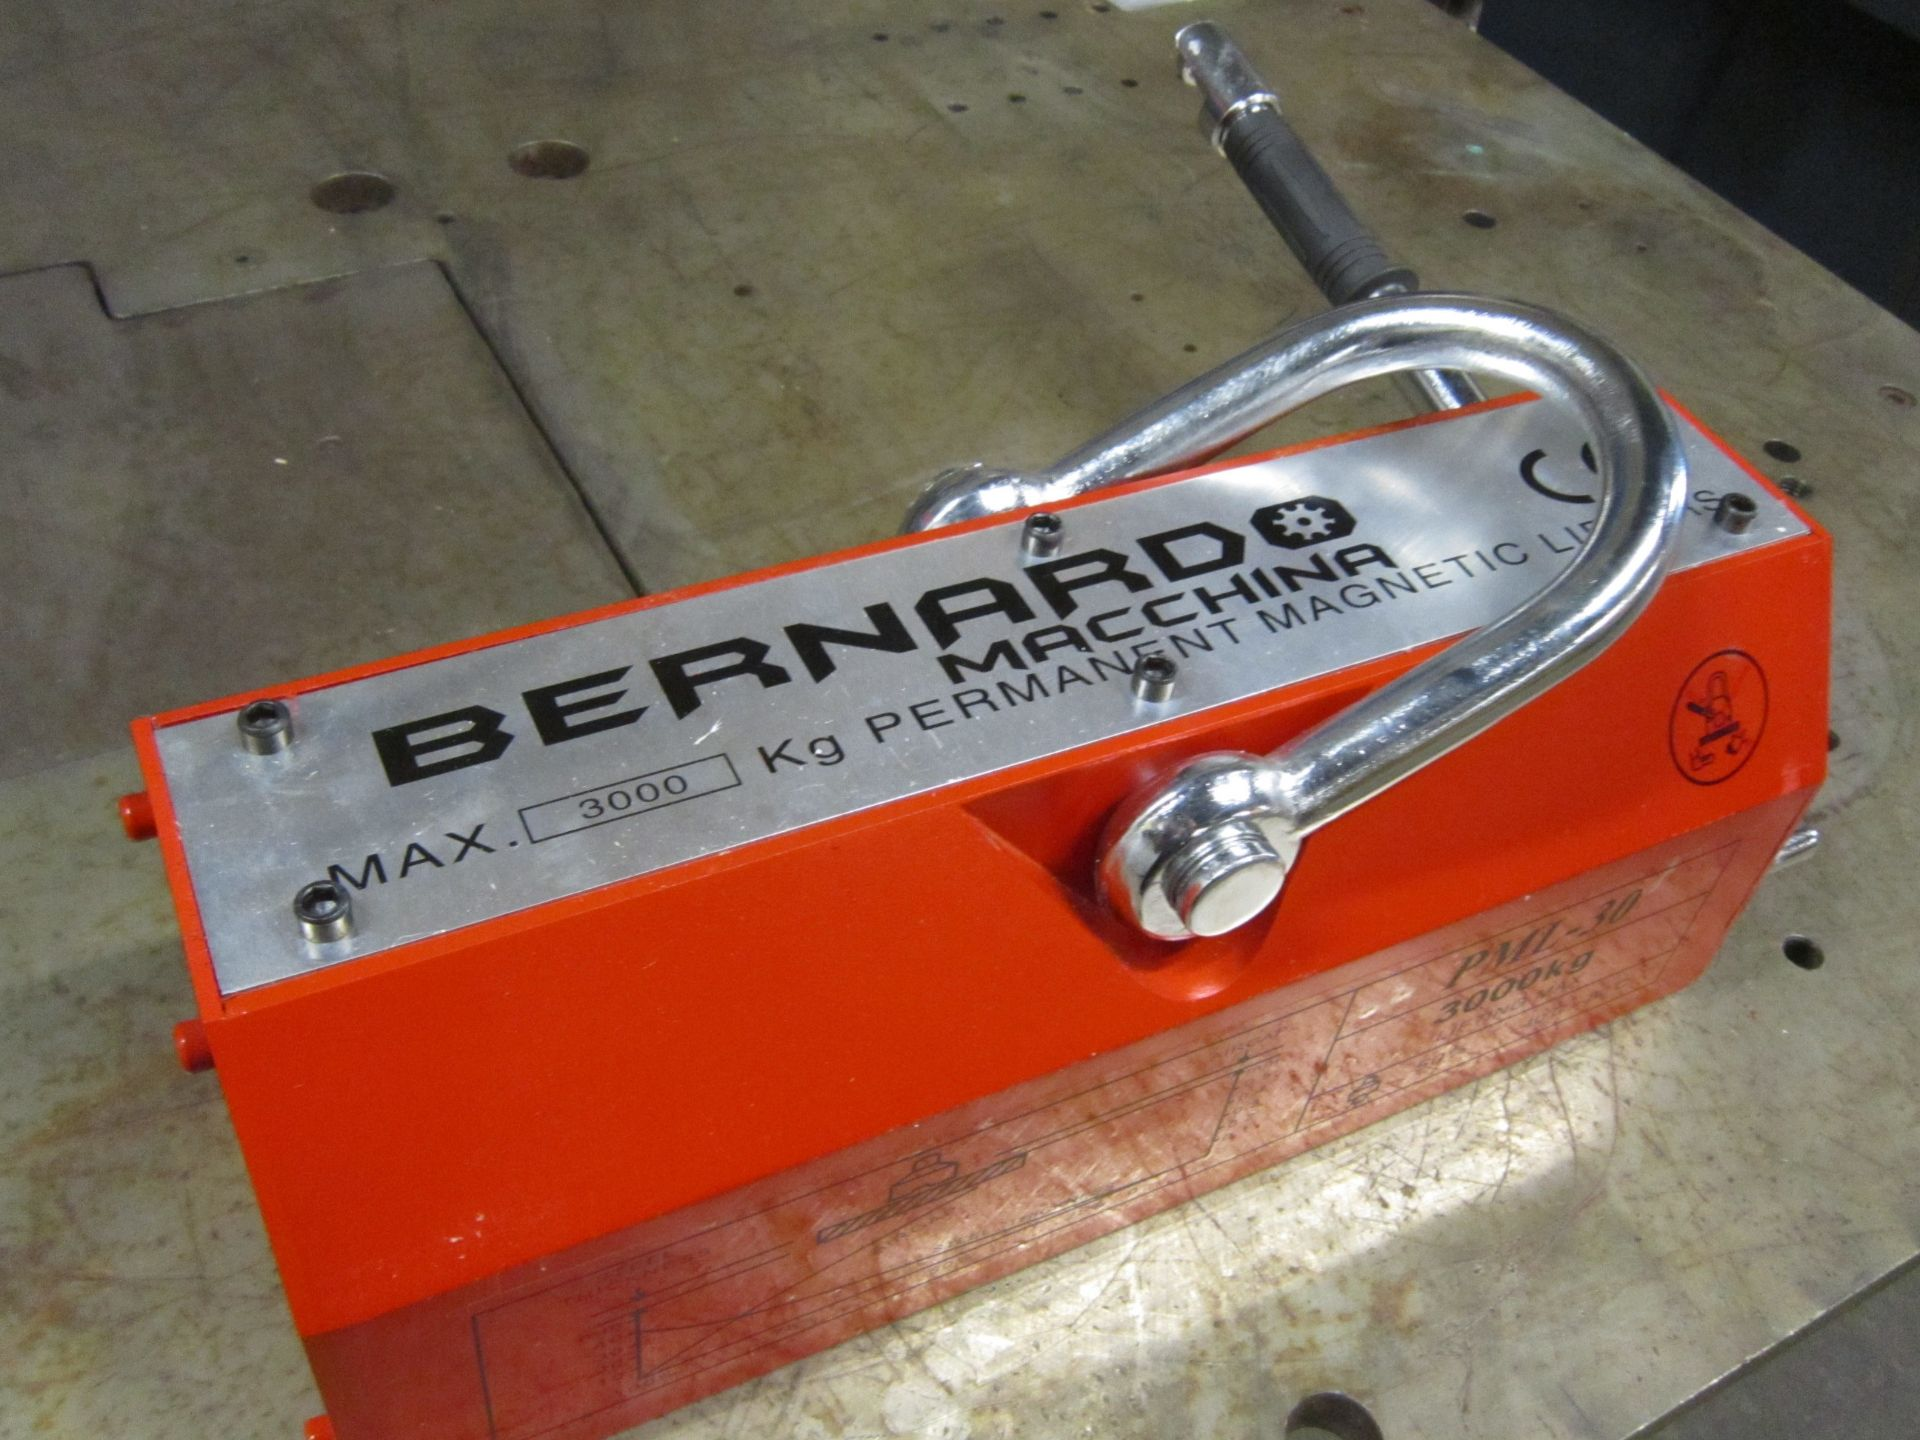 Bernardo 6500lbs / 3 ton Heavy Duty Lifting Magnet - for plate and pipe - MINT UNIT